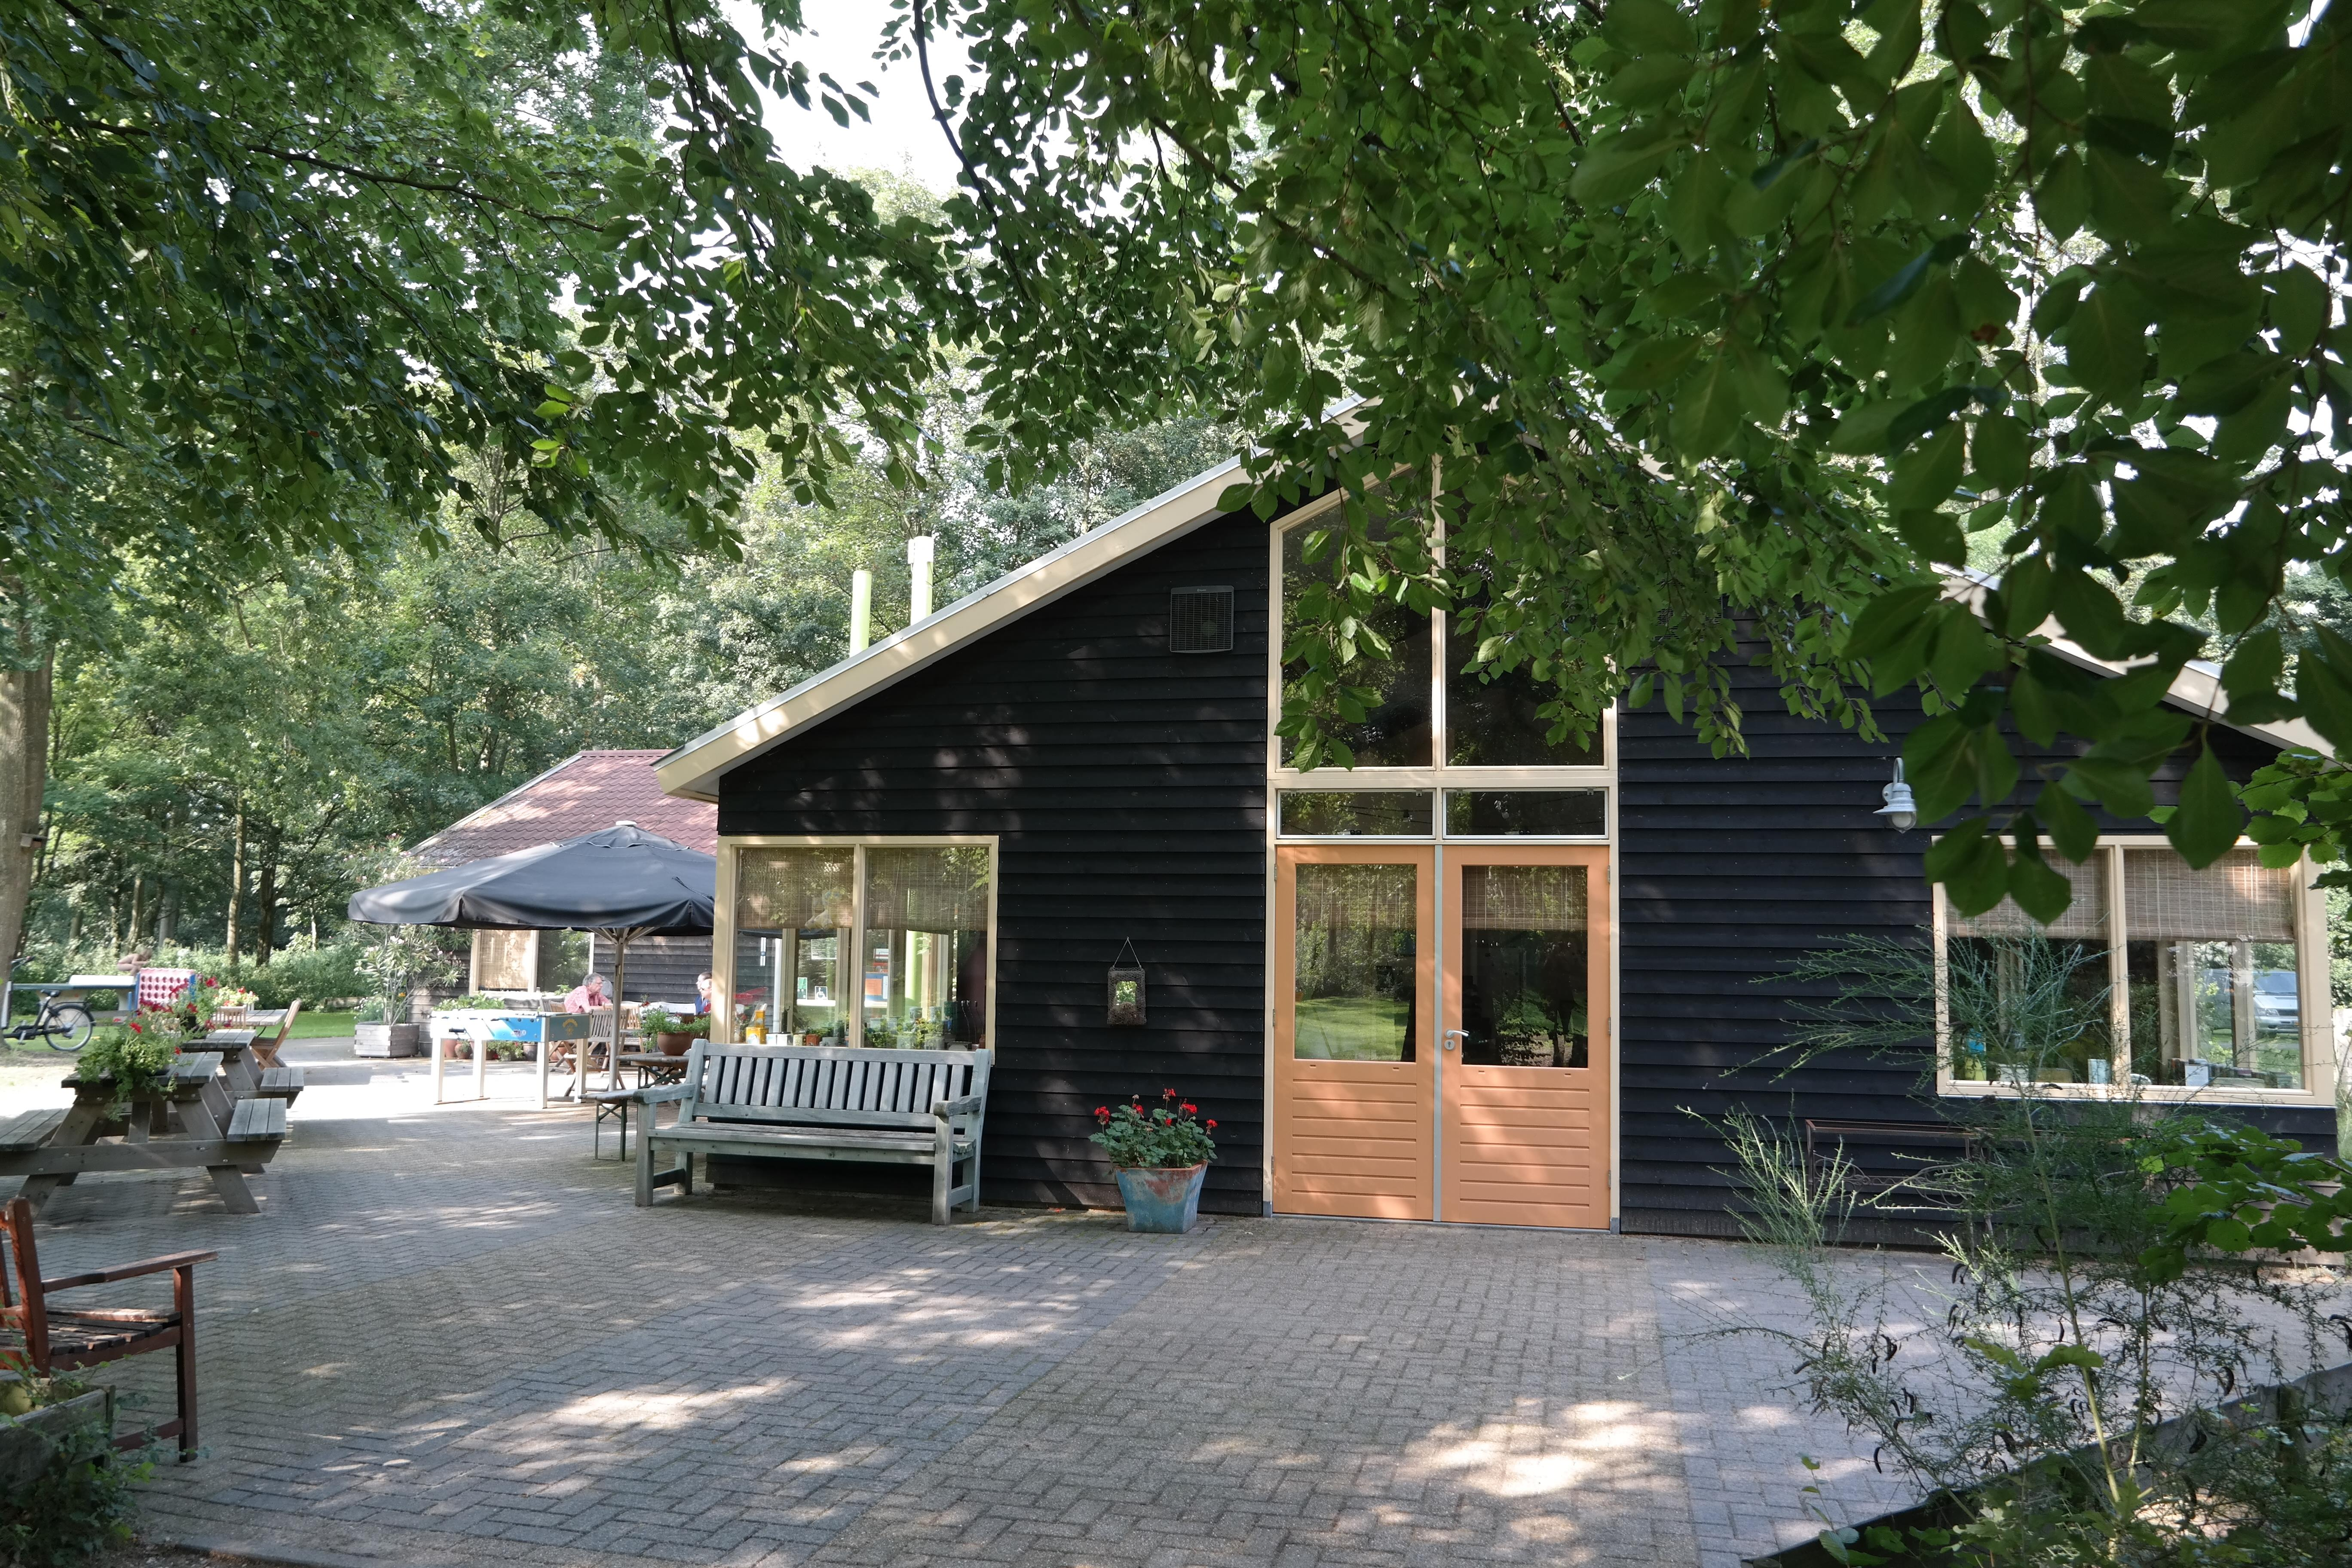 Establishment Camping De Ruimte - Dronten